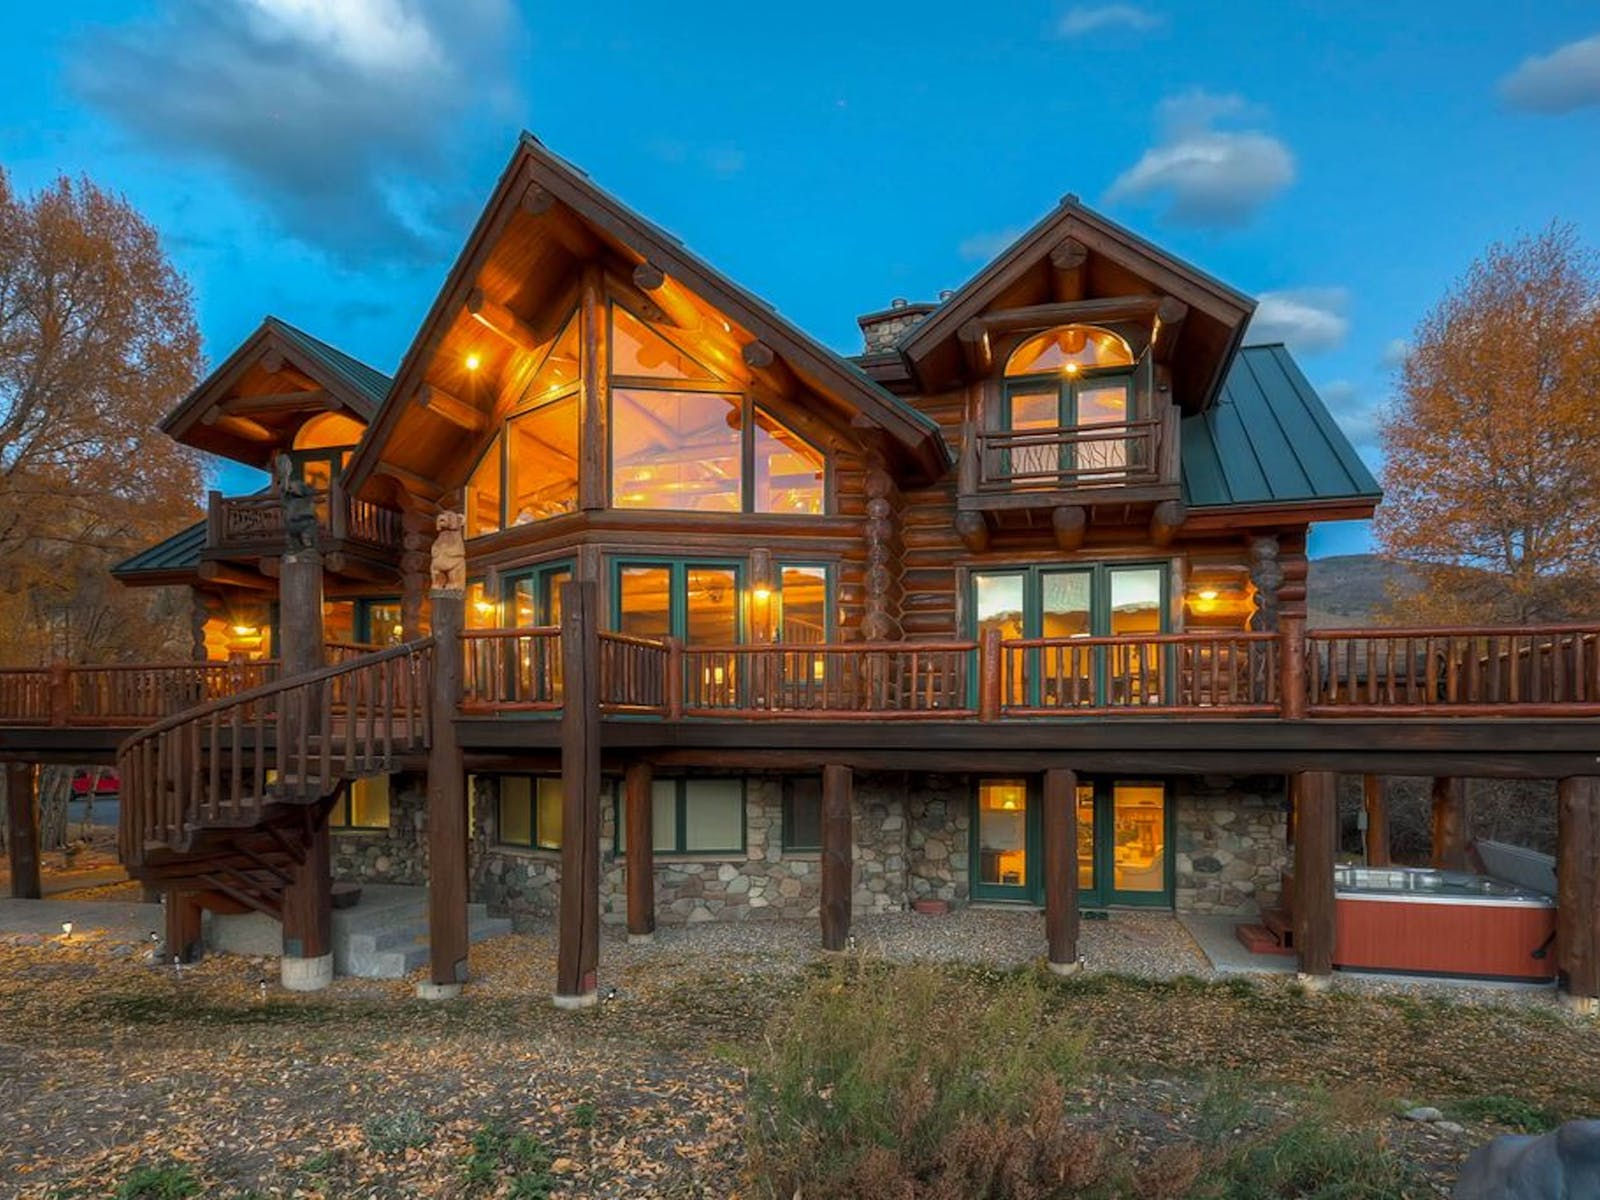 silverthorne, co vacation cabin rental with hot tub and large deck